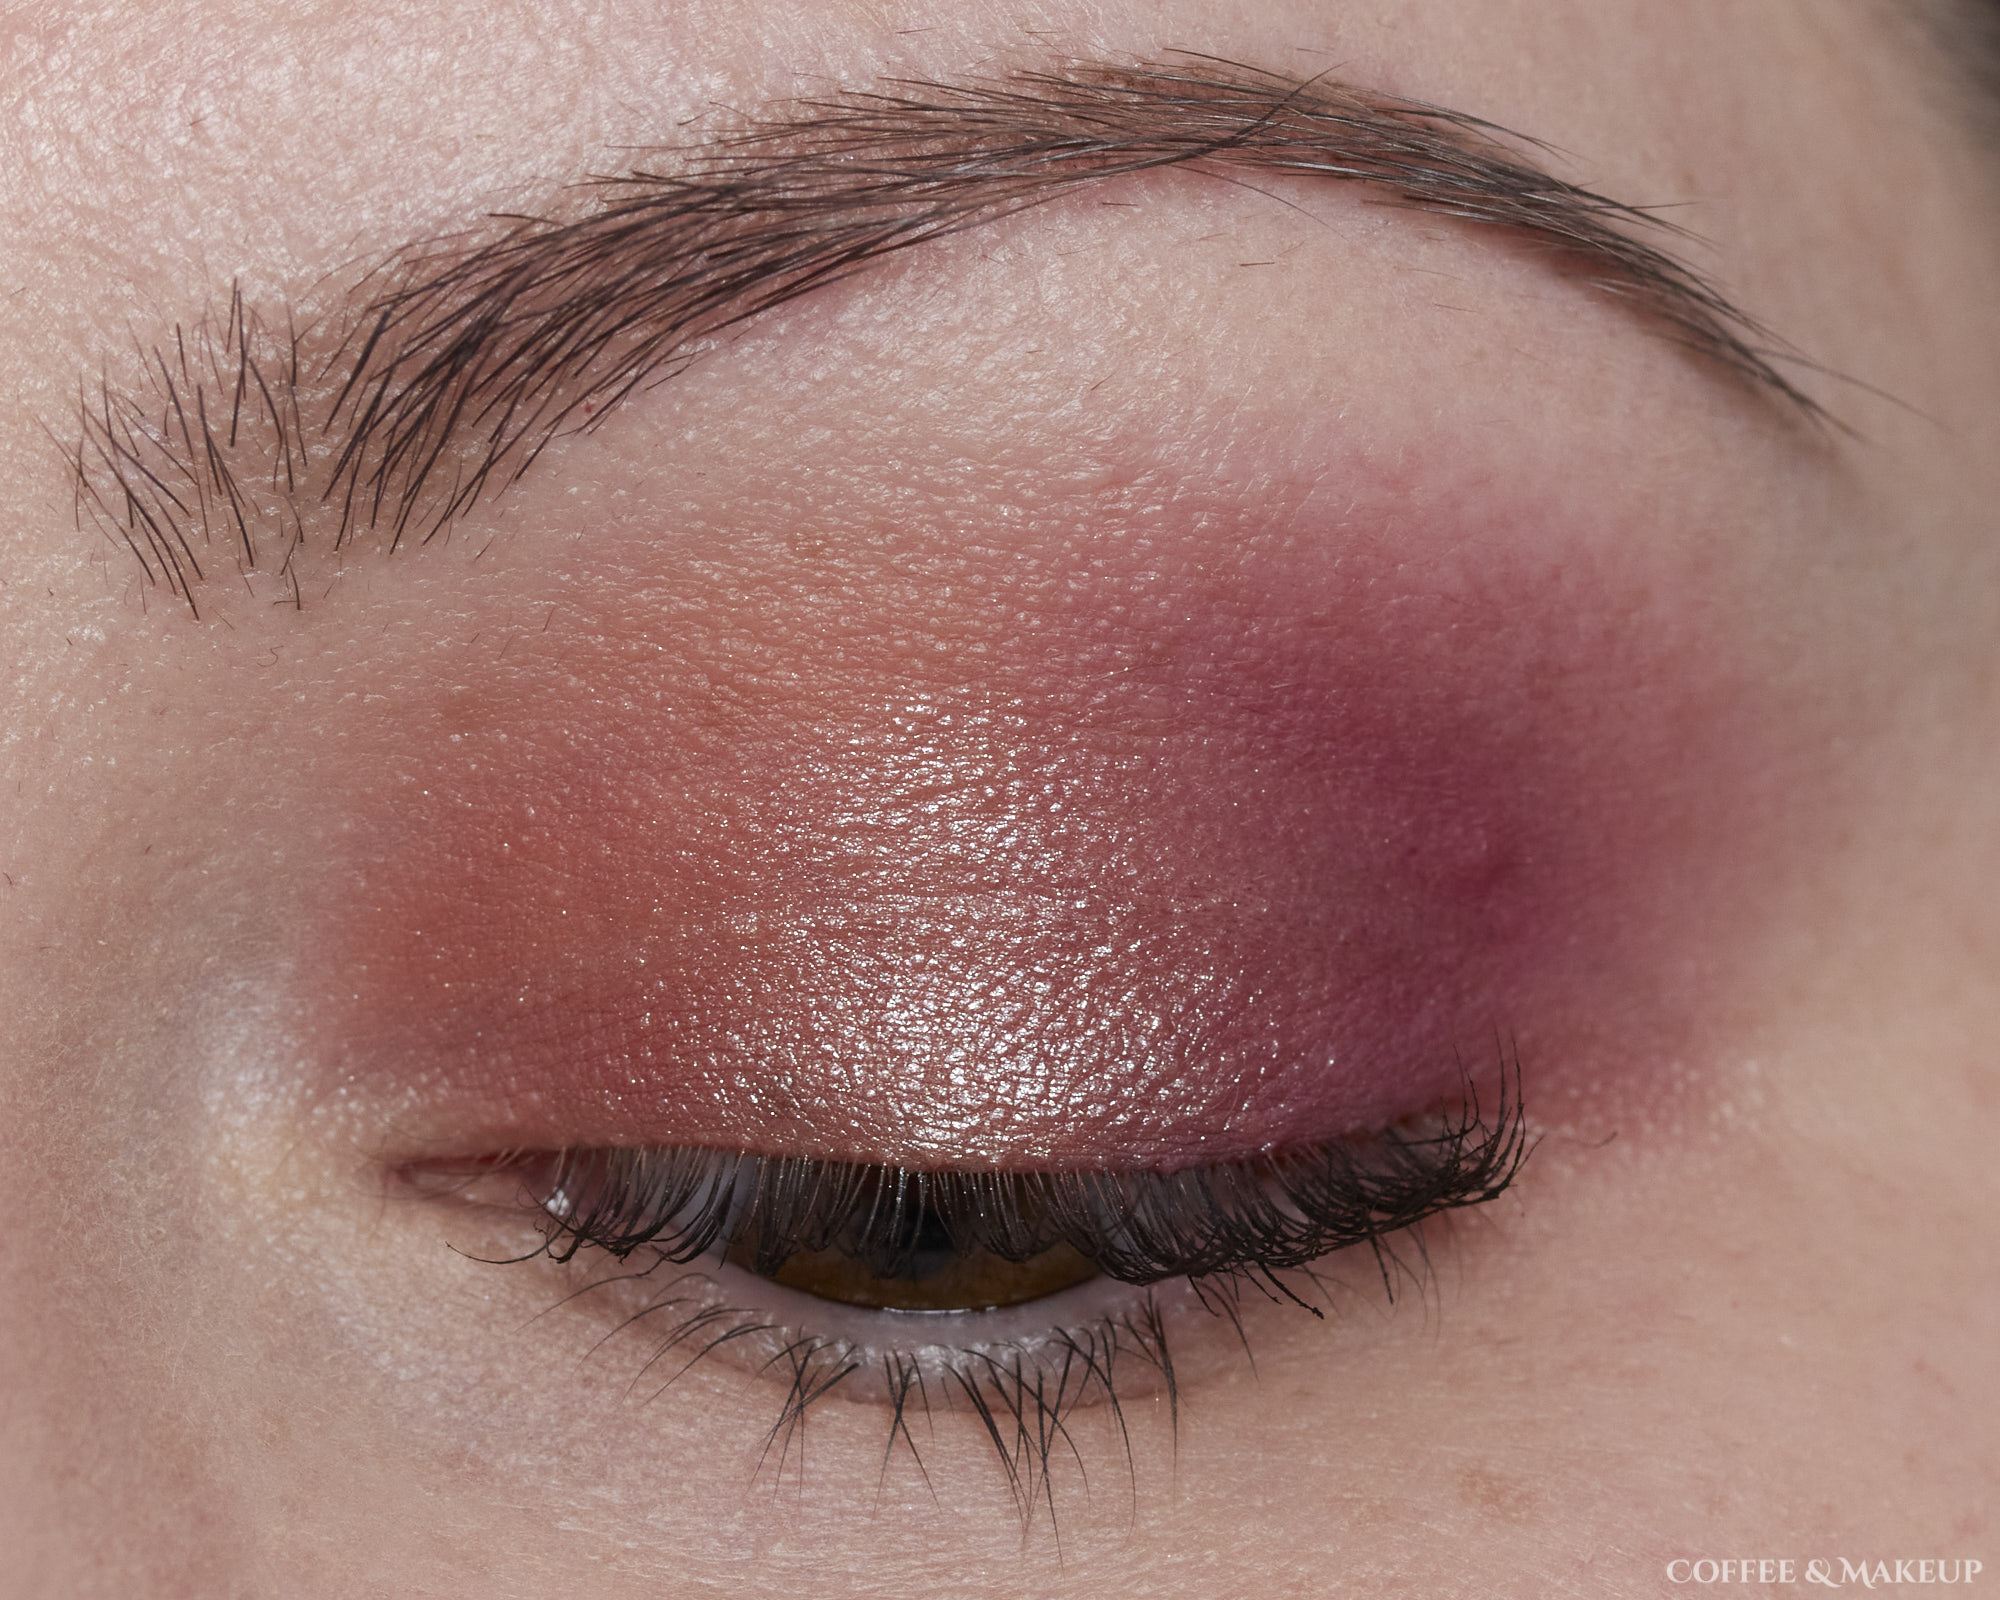 Makeup Geek Eyeshadow Look #4